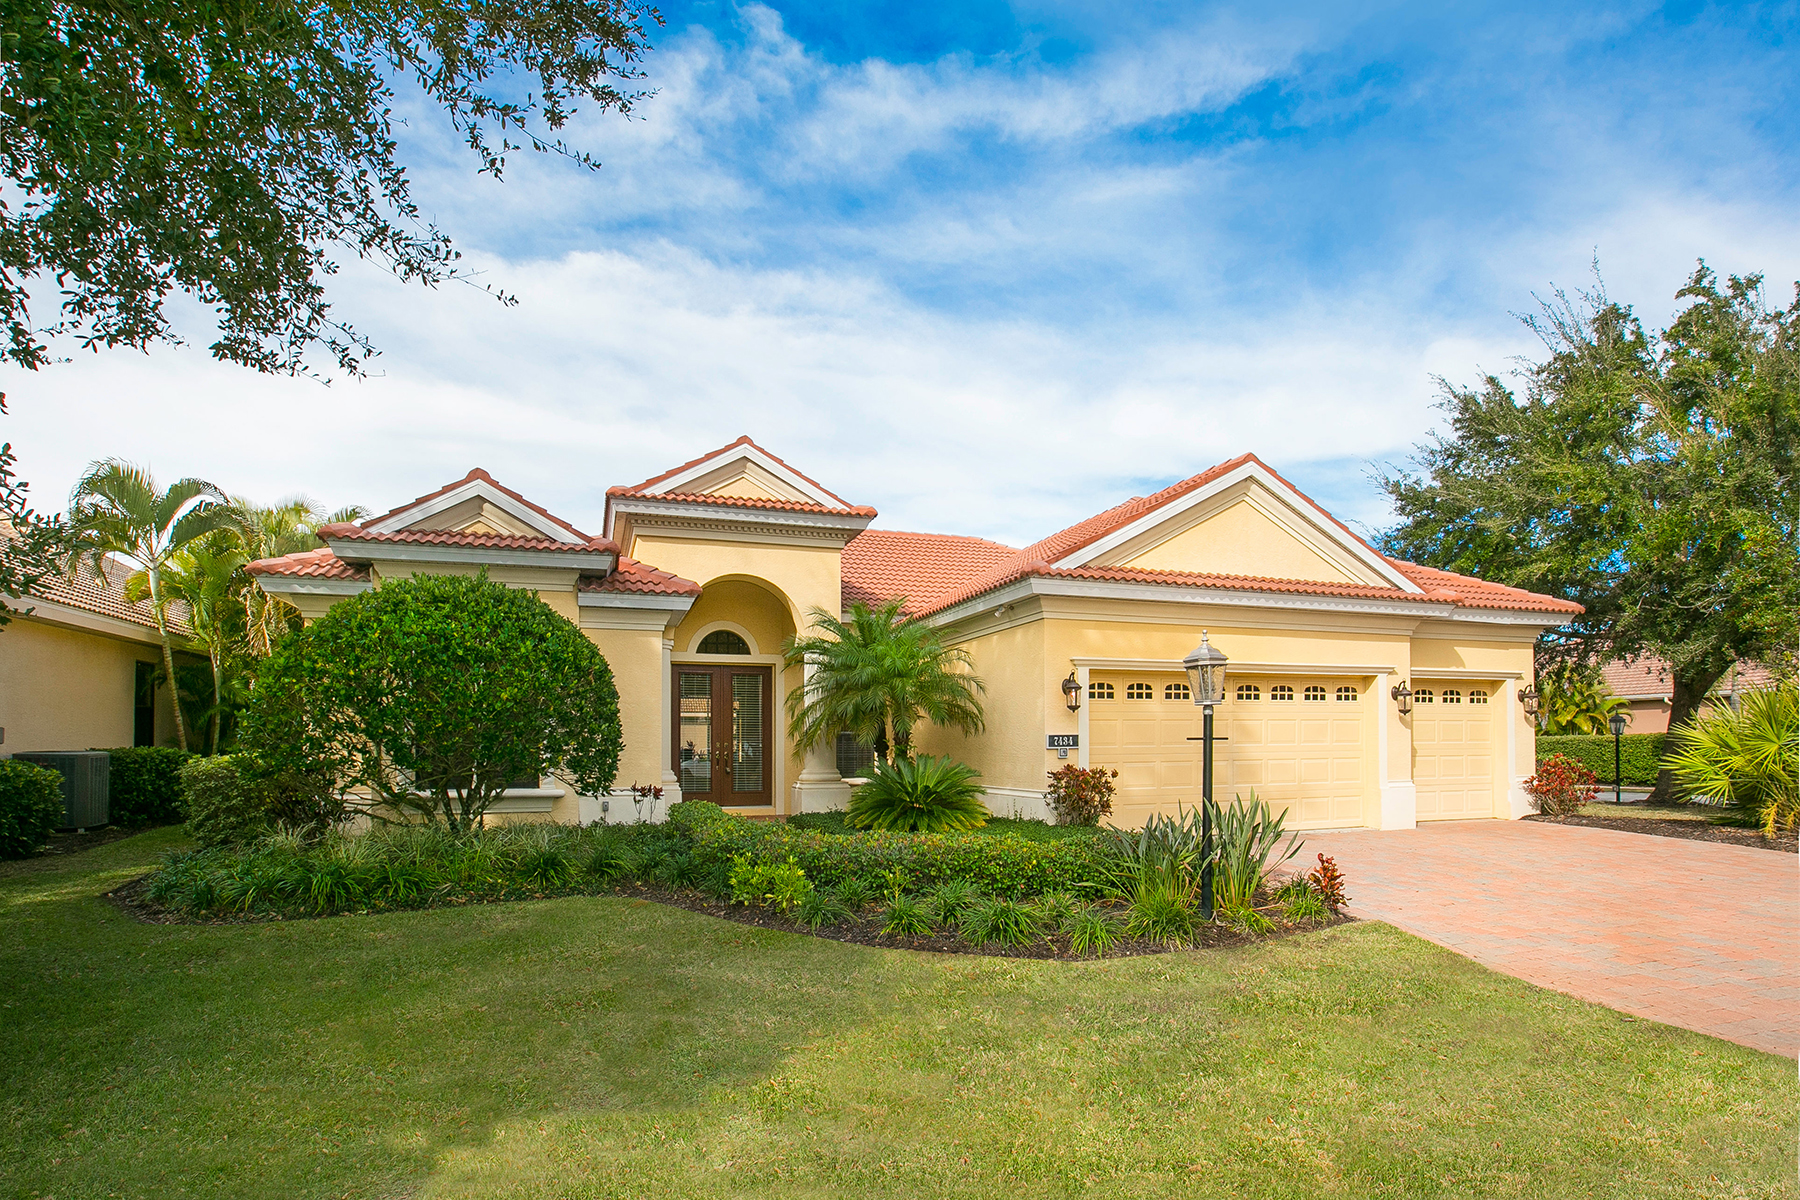 Single Family Home for Sale at LAKEWOOD RANCH COUNTRY CLUB 7434 Mizner Reserve Ct Lakewood Ranch, Florida, 34202 United States